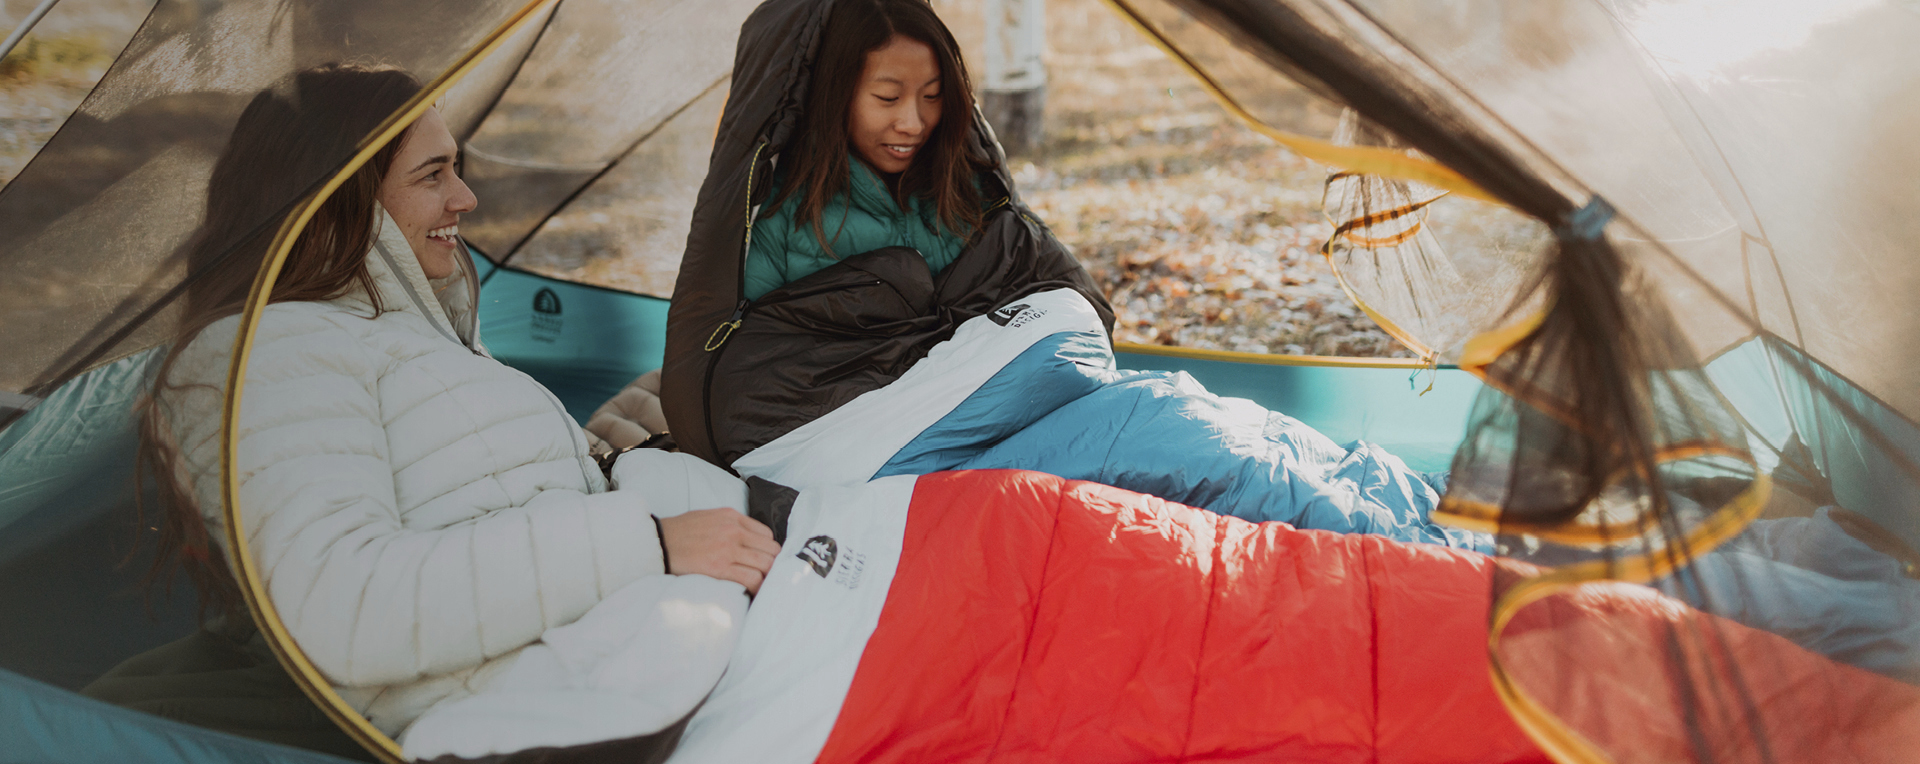 New Synthesis Sleeping Bags